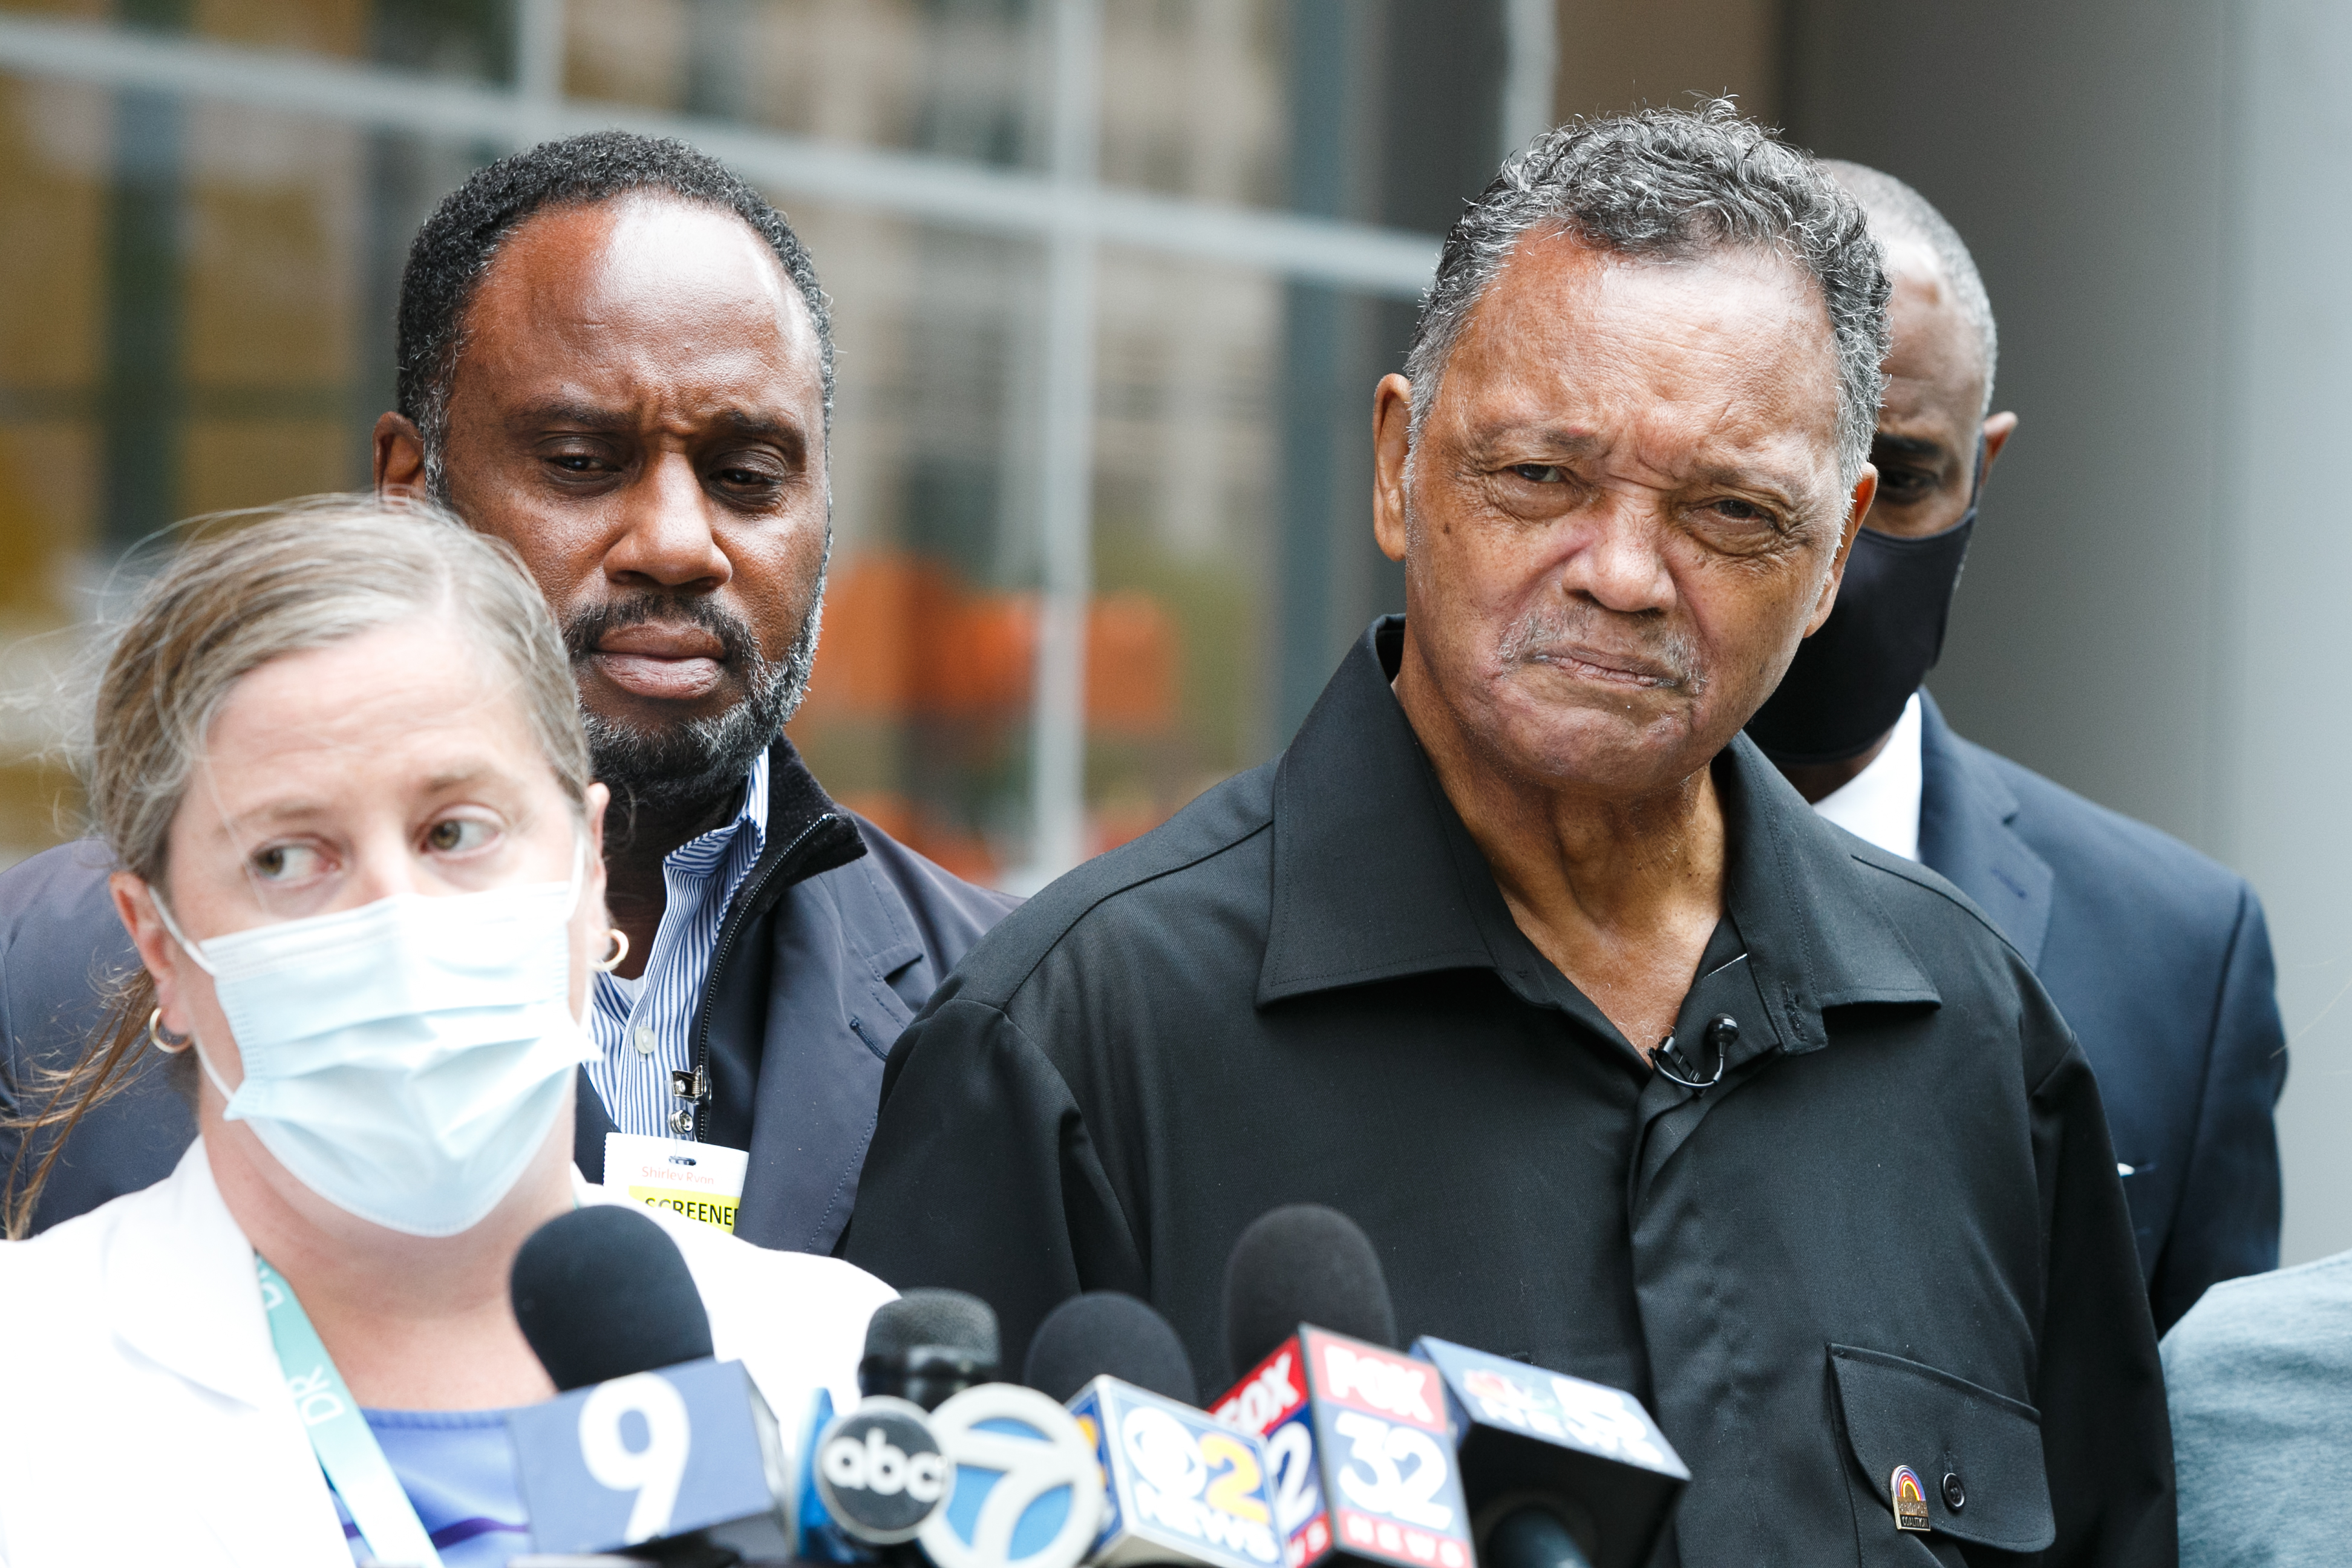 Rev. Jesse L. Jackson Sr. was discharged Wednesday from the Shirley Ryan AbilityLab.